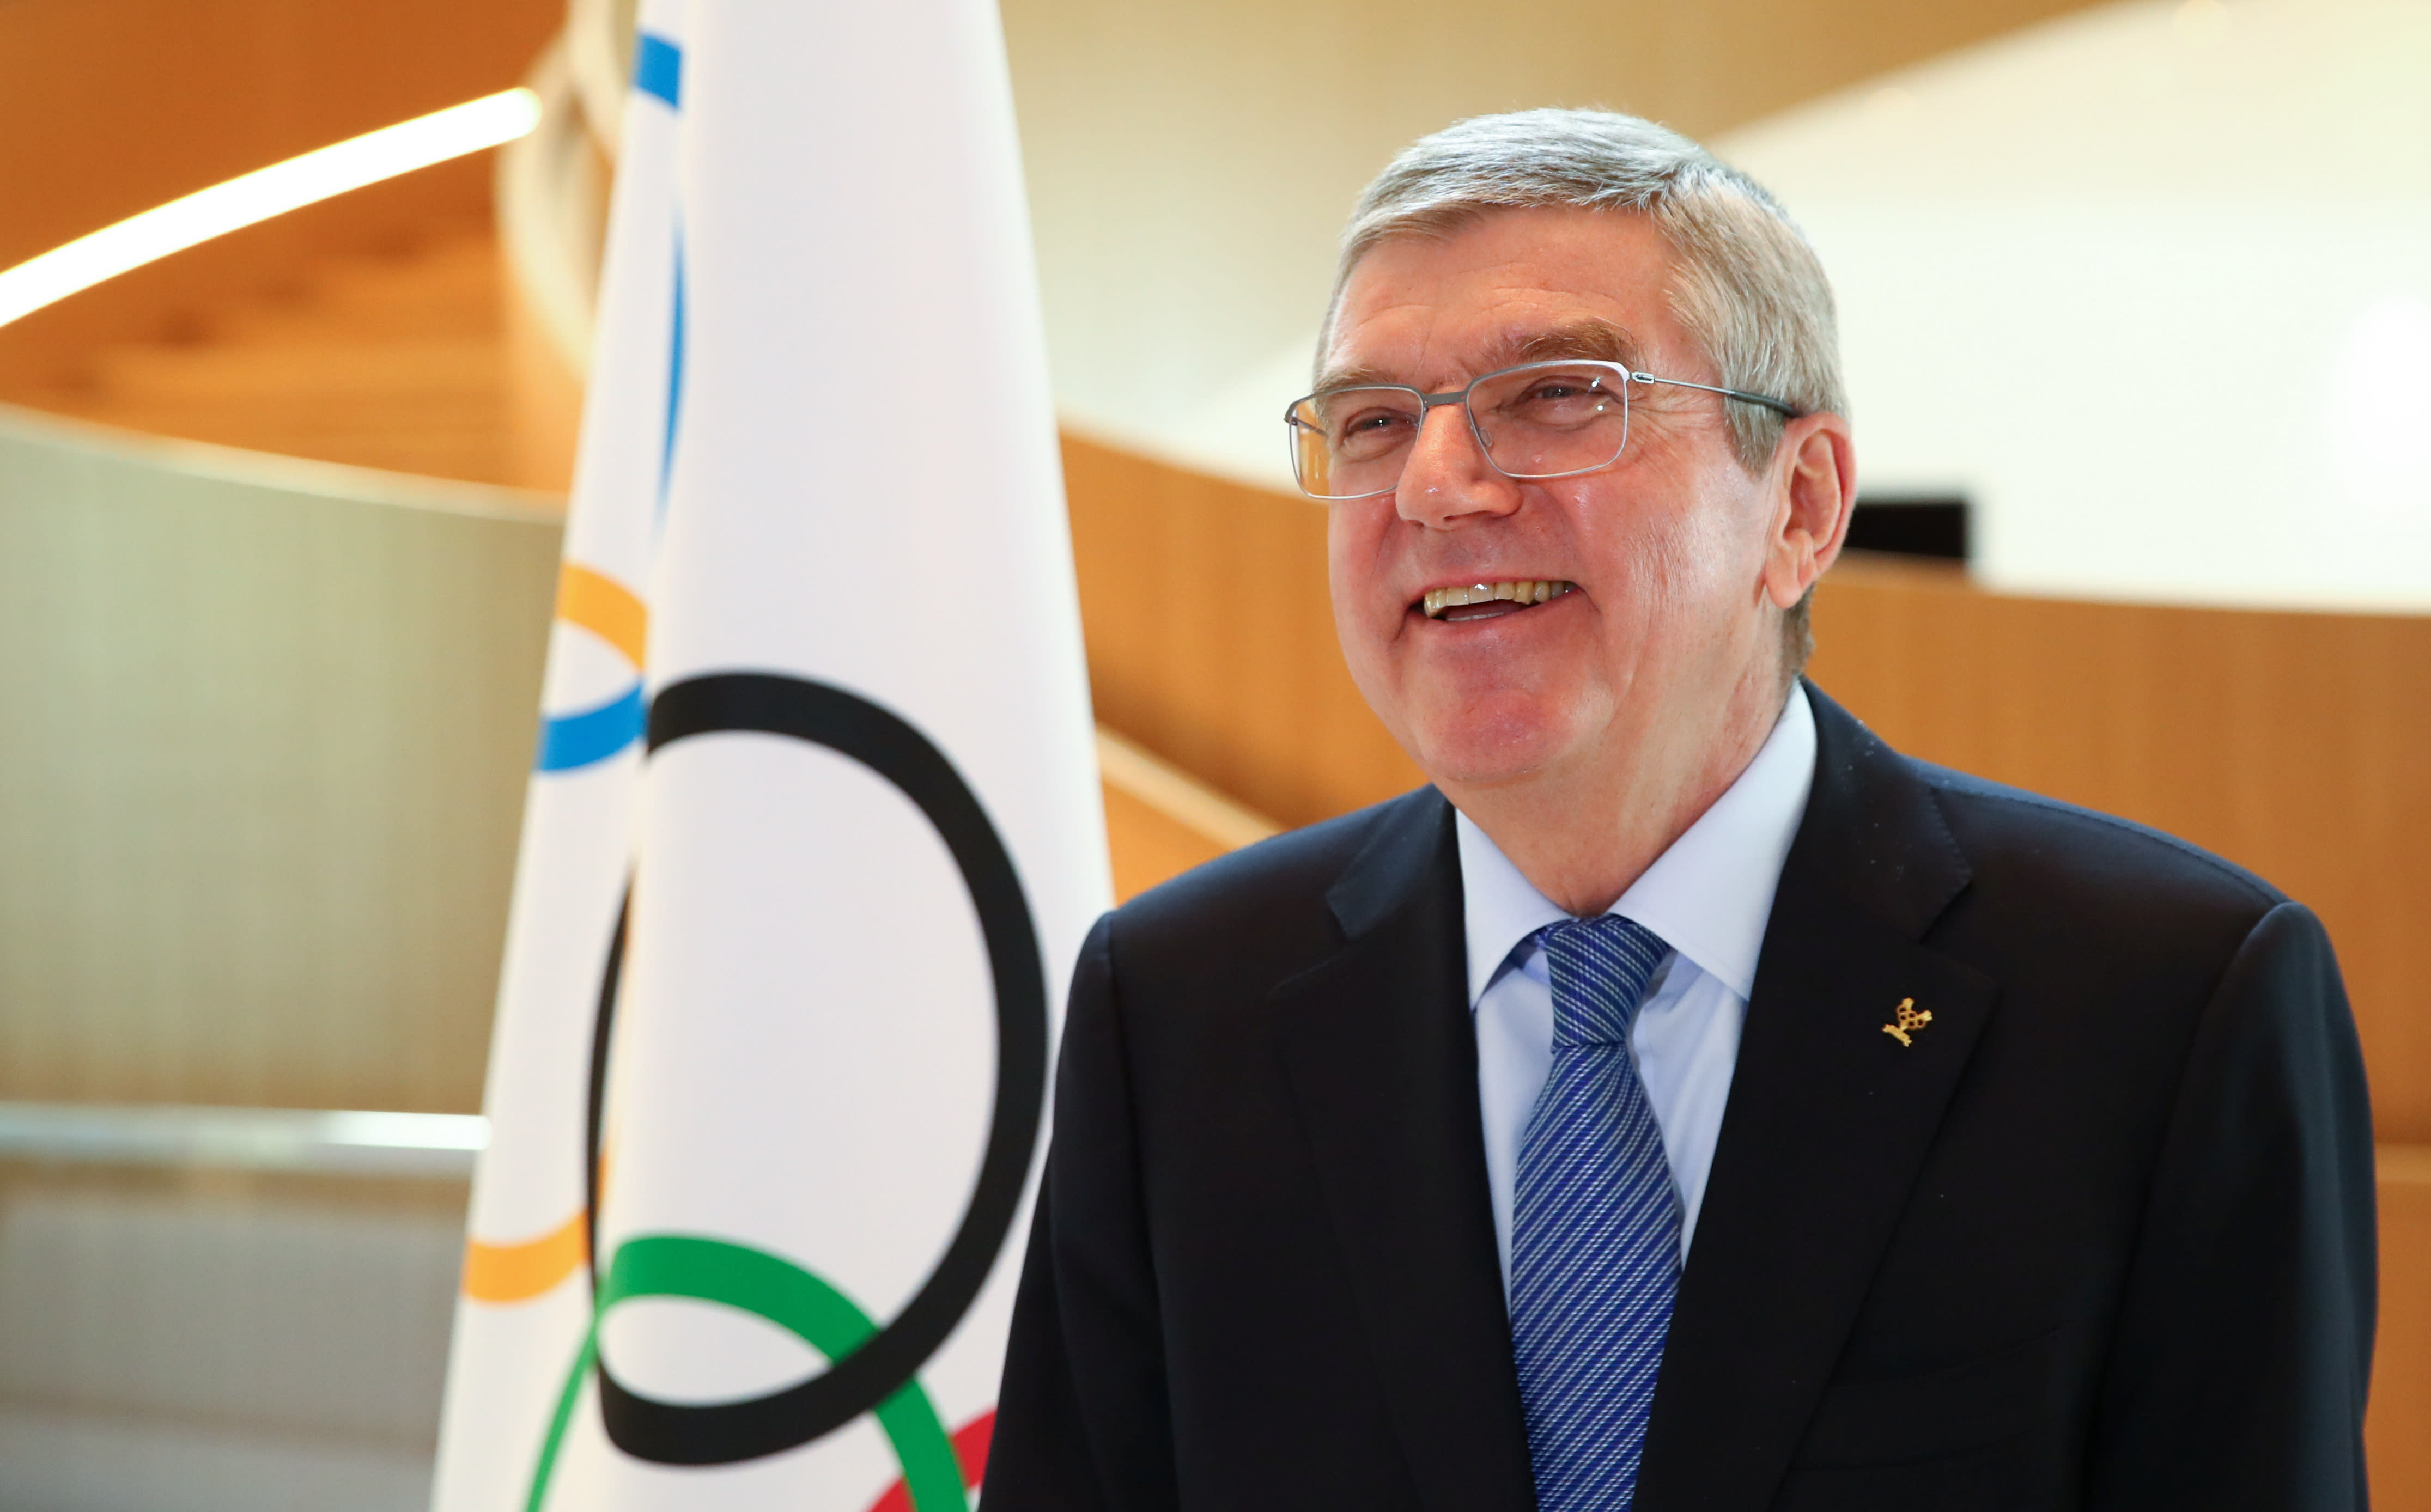 Thomas Bach, president of the International Olympic Committee (IOC), attends an interview after the decision to postpone the Tokyo 2020 Olympic Games because of the coronavirus disease (COVID-19) outbreak, in Lausanne, Switzerland, on Wednesday, March 25, 2020. (Denis Balibouse/Keystone via AP)